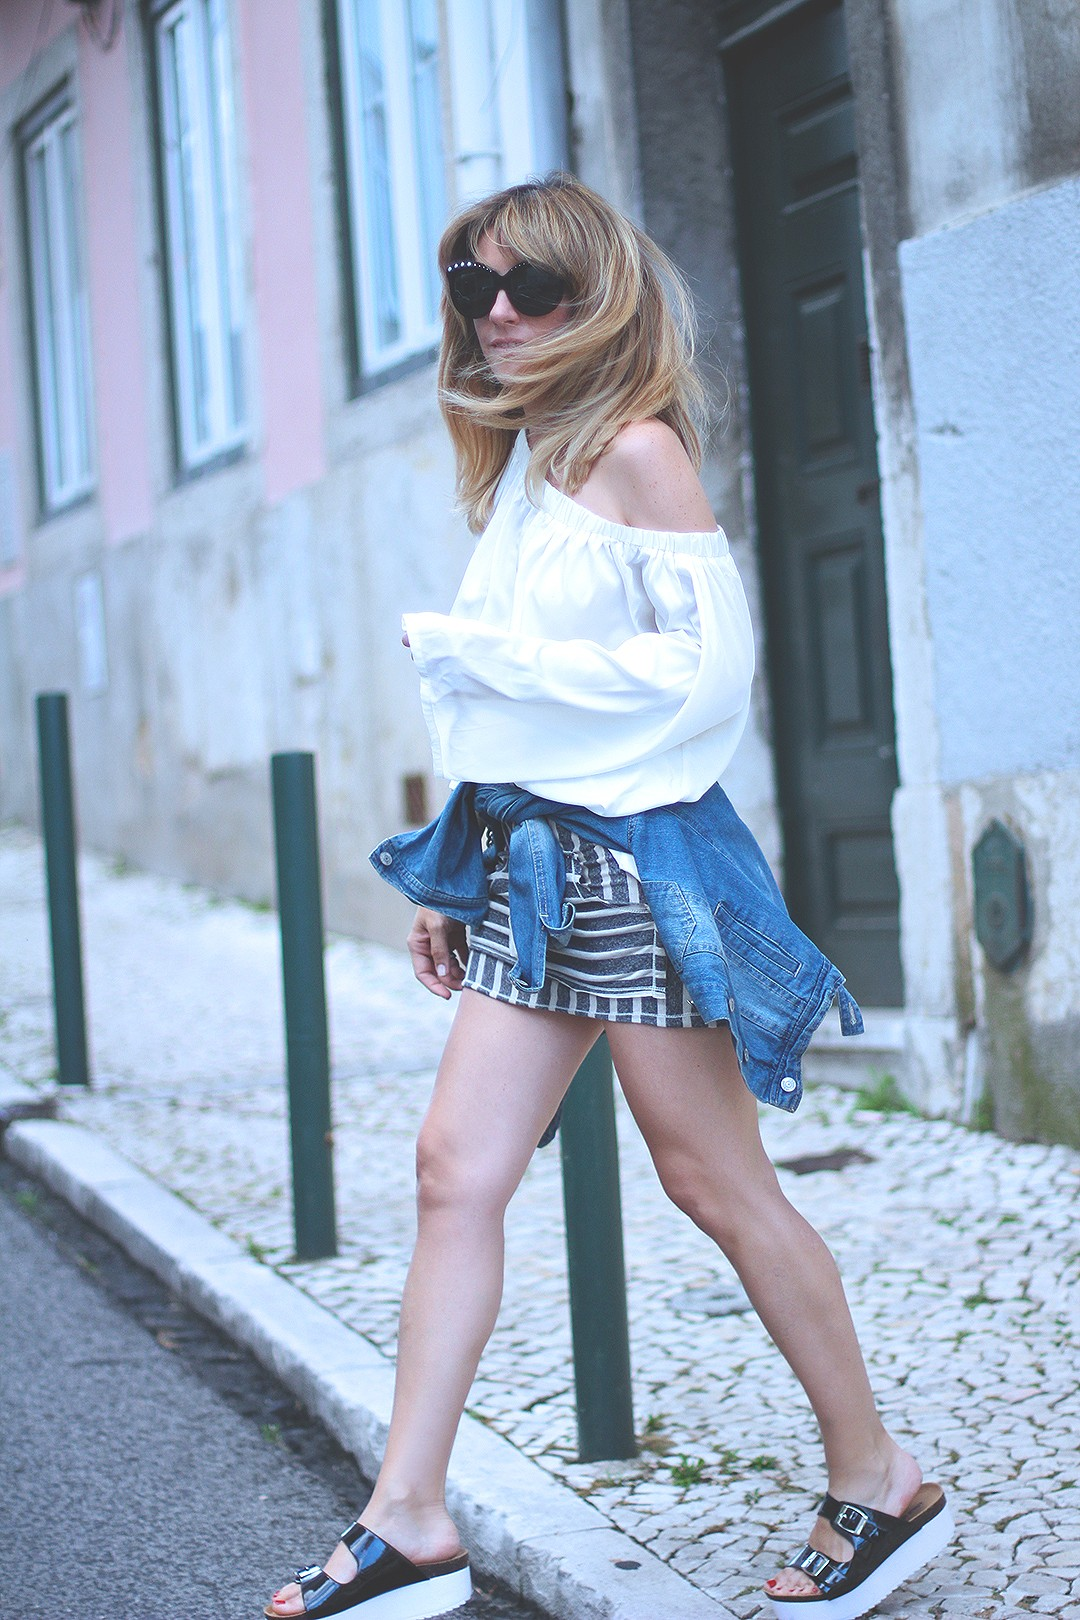 Lisboa-fashion-blogger-Vueling-